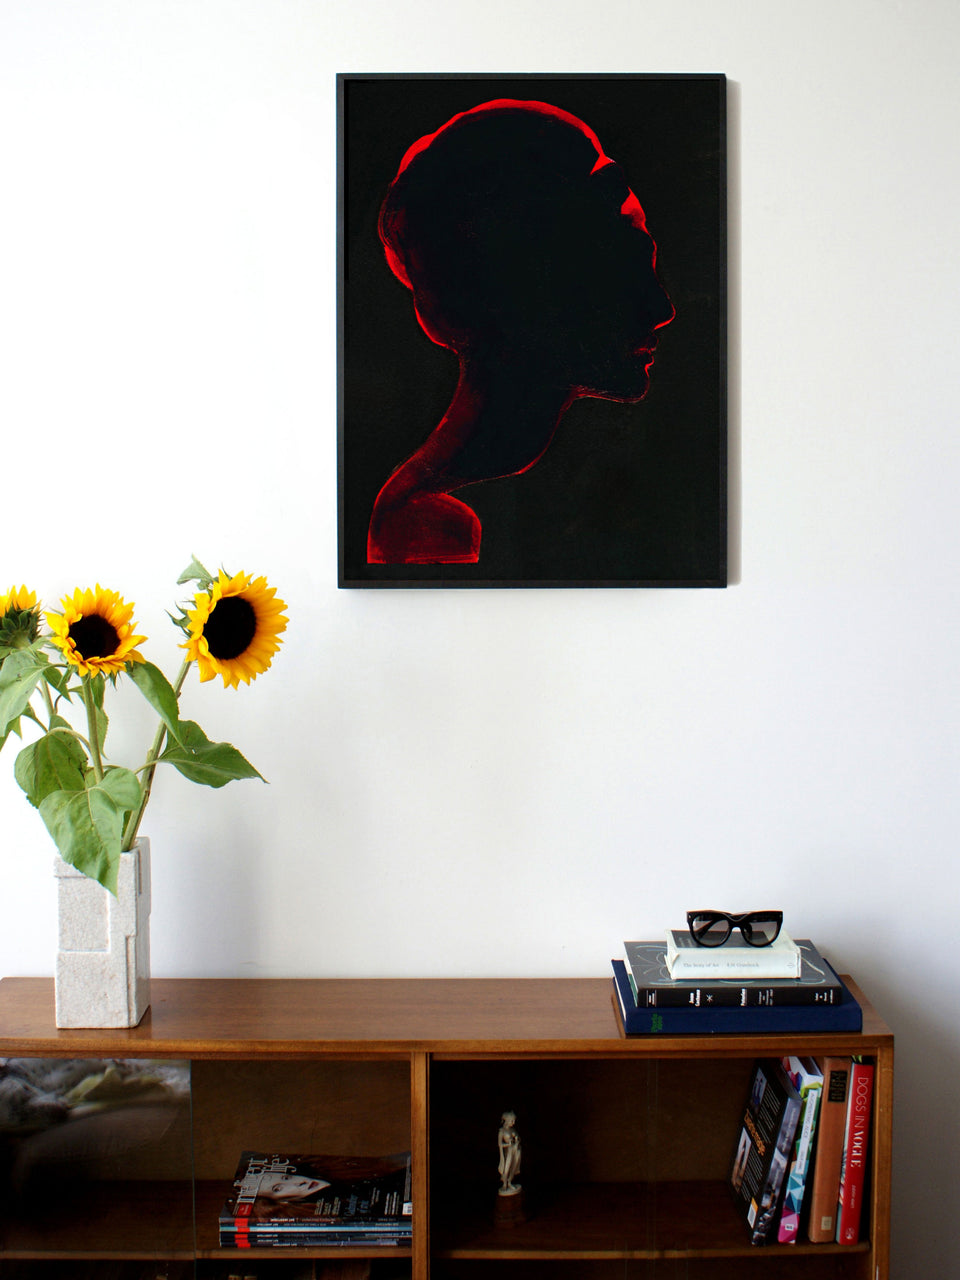 Fashion illustration print of Silhouette Black by Sjoukje Bierma - portrait of woman - 60 x 80 cm framed